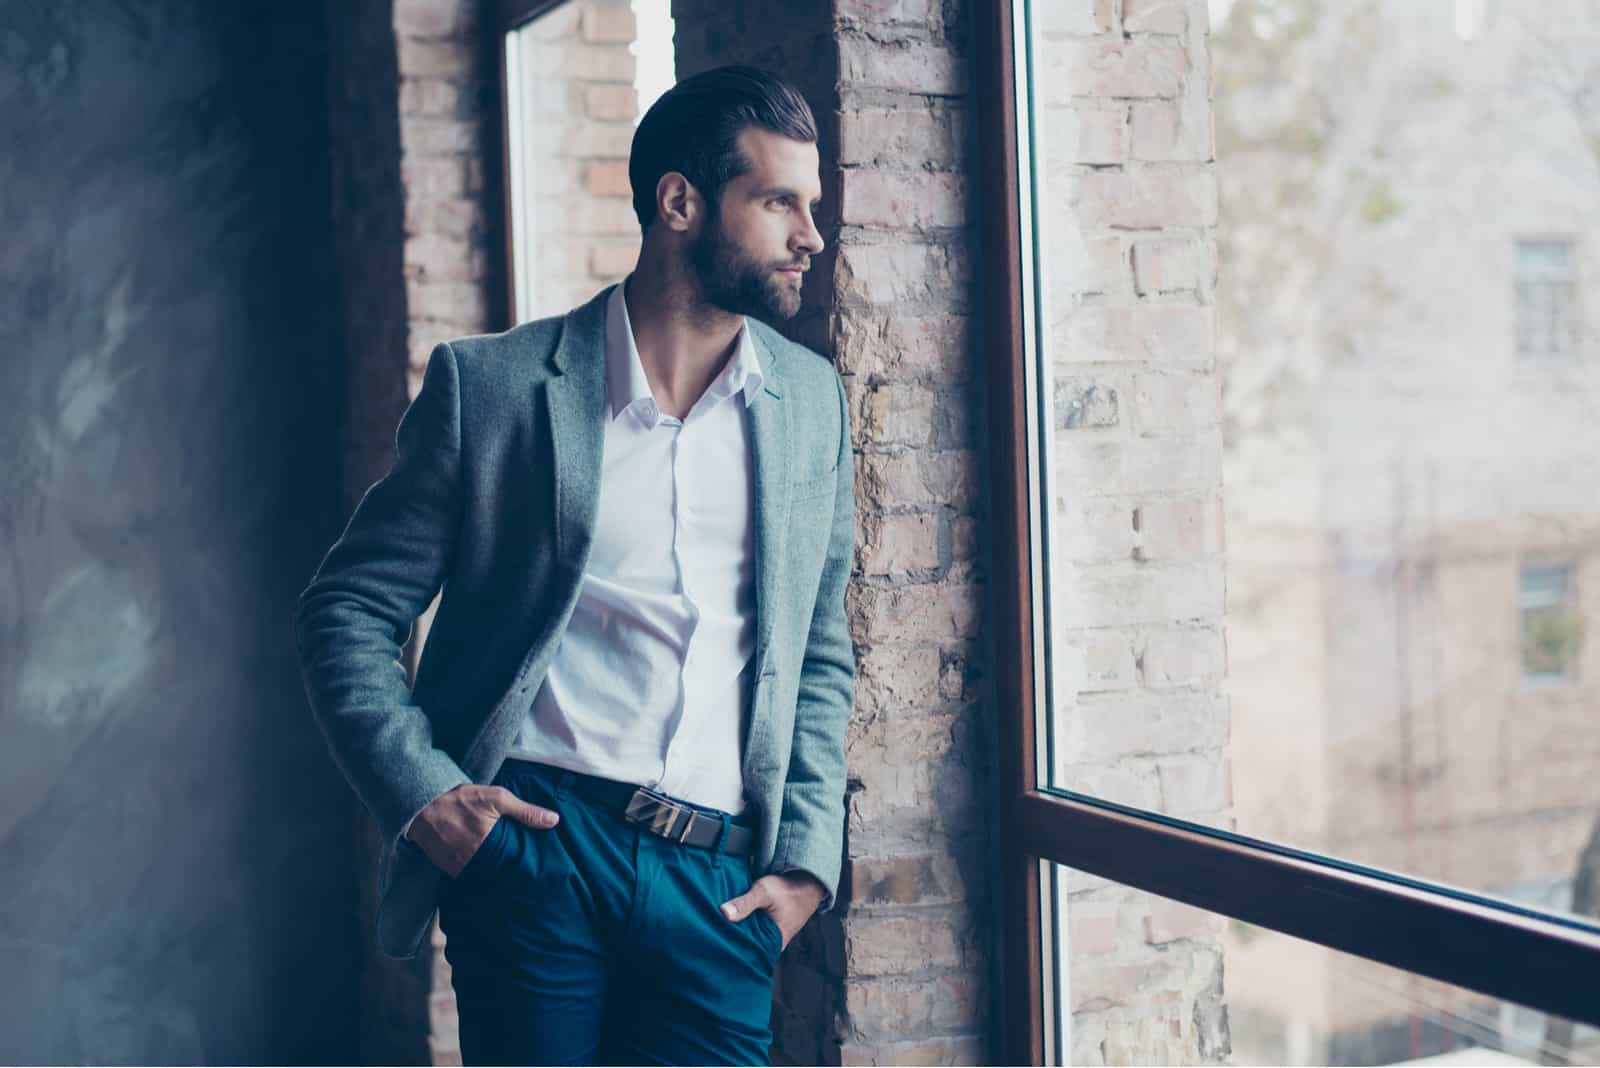 Stylish young bearded man is standing near the window